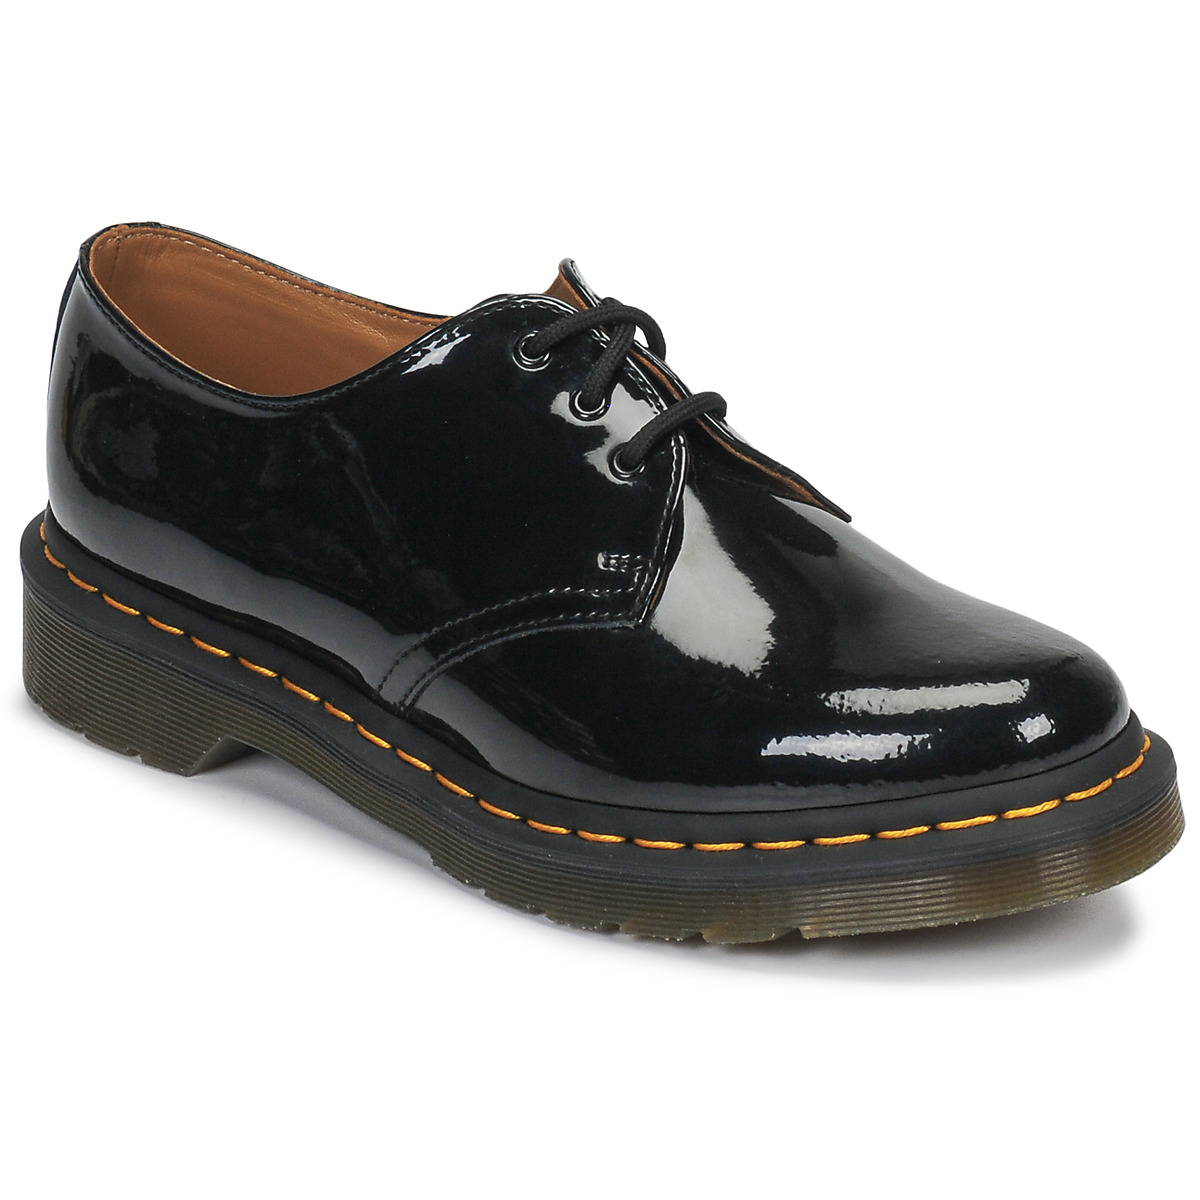 dr martens 1461 noir livraison gratuite avec chaussures derbies femme 98 10. Black Bedroom Furniture Sets. Home Design Ideas